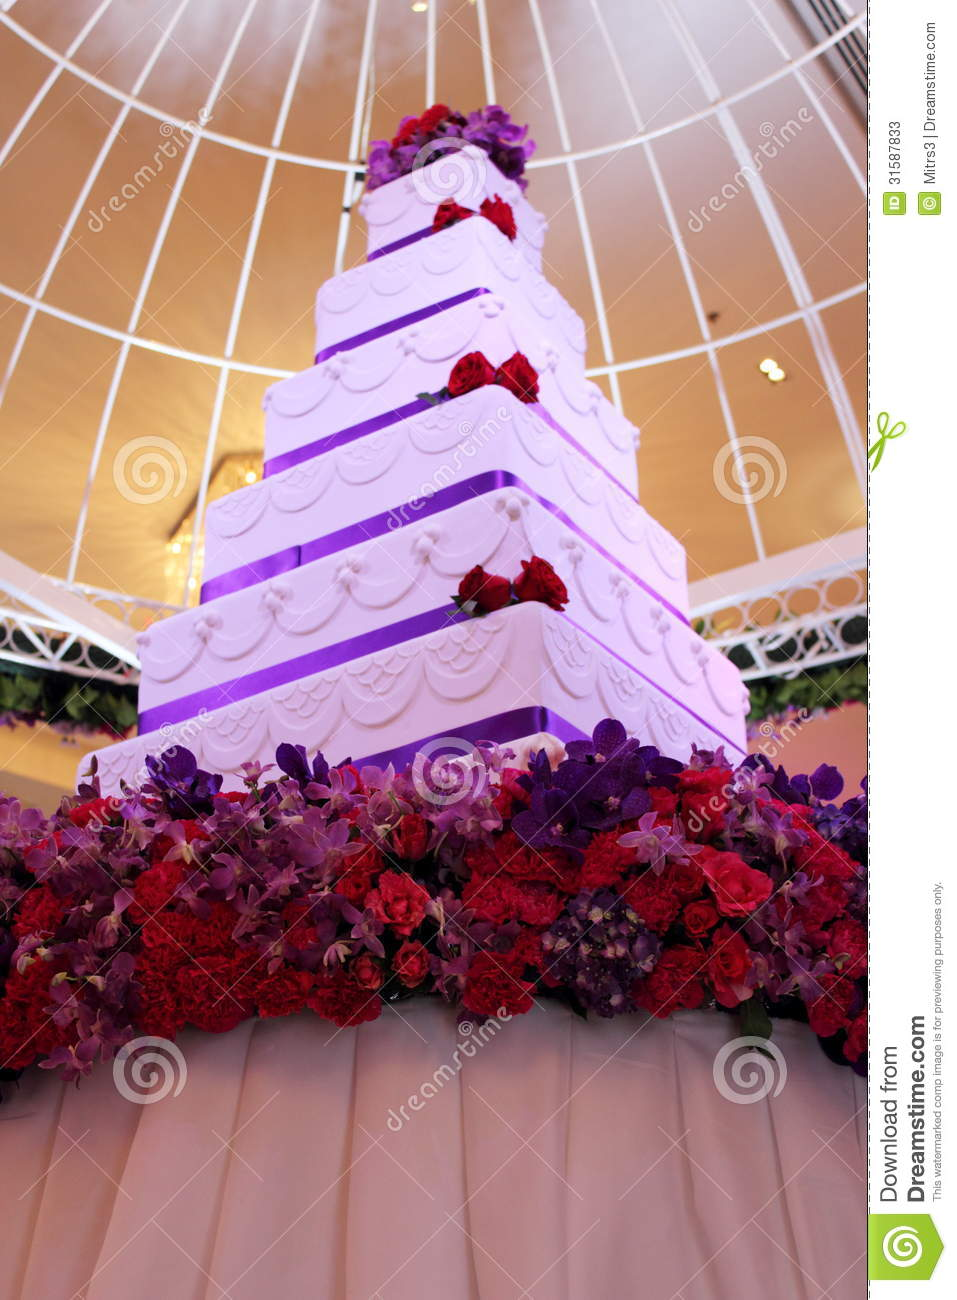 Tier White And Purple Square Wedding Cake Stock Image